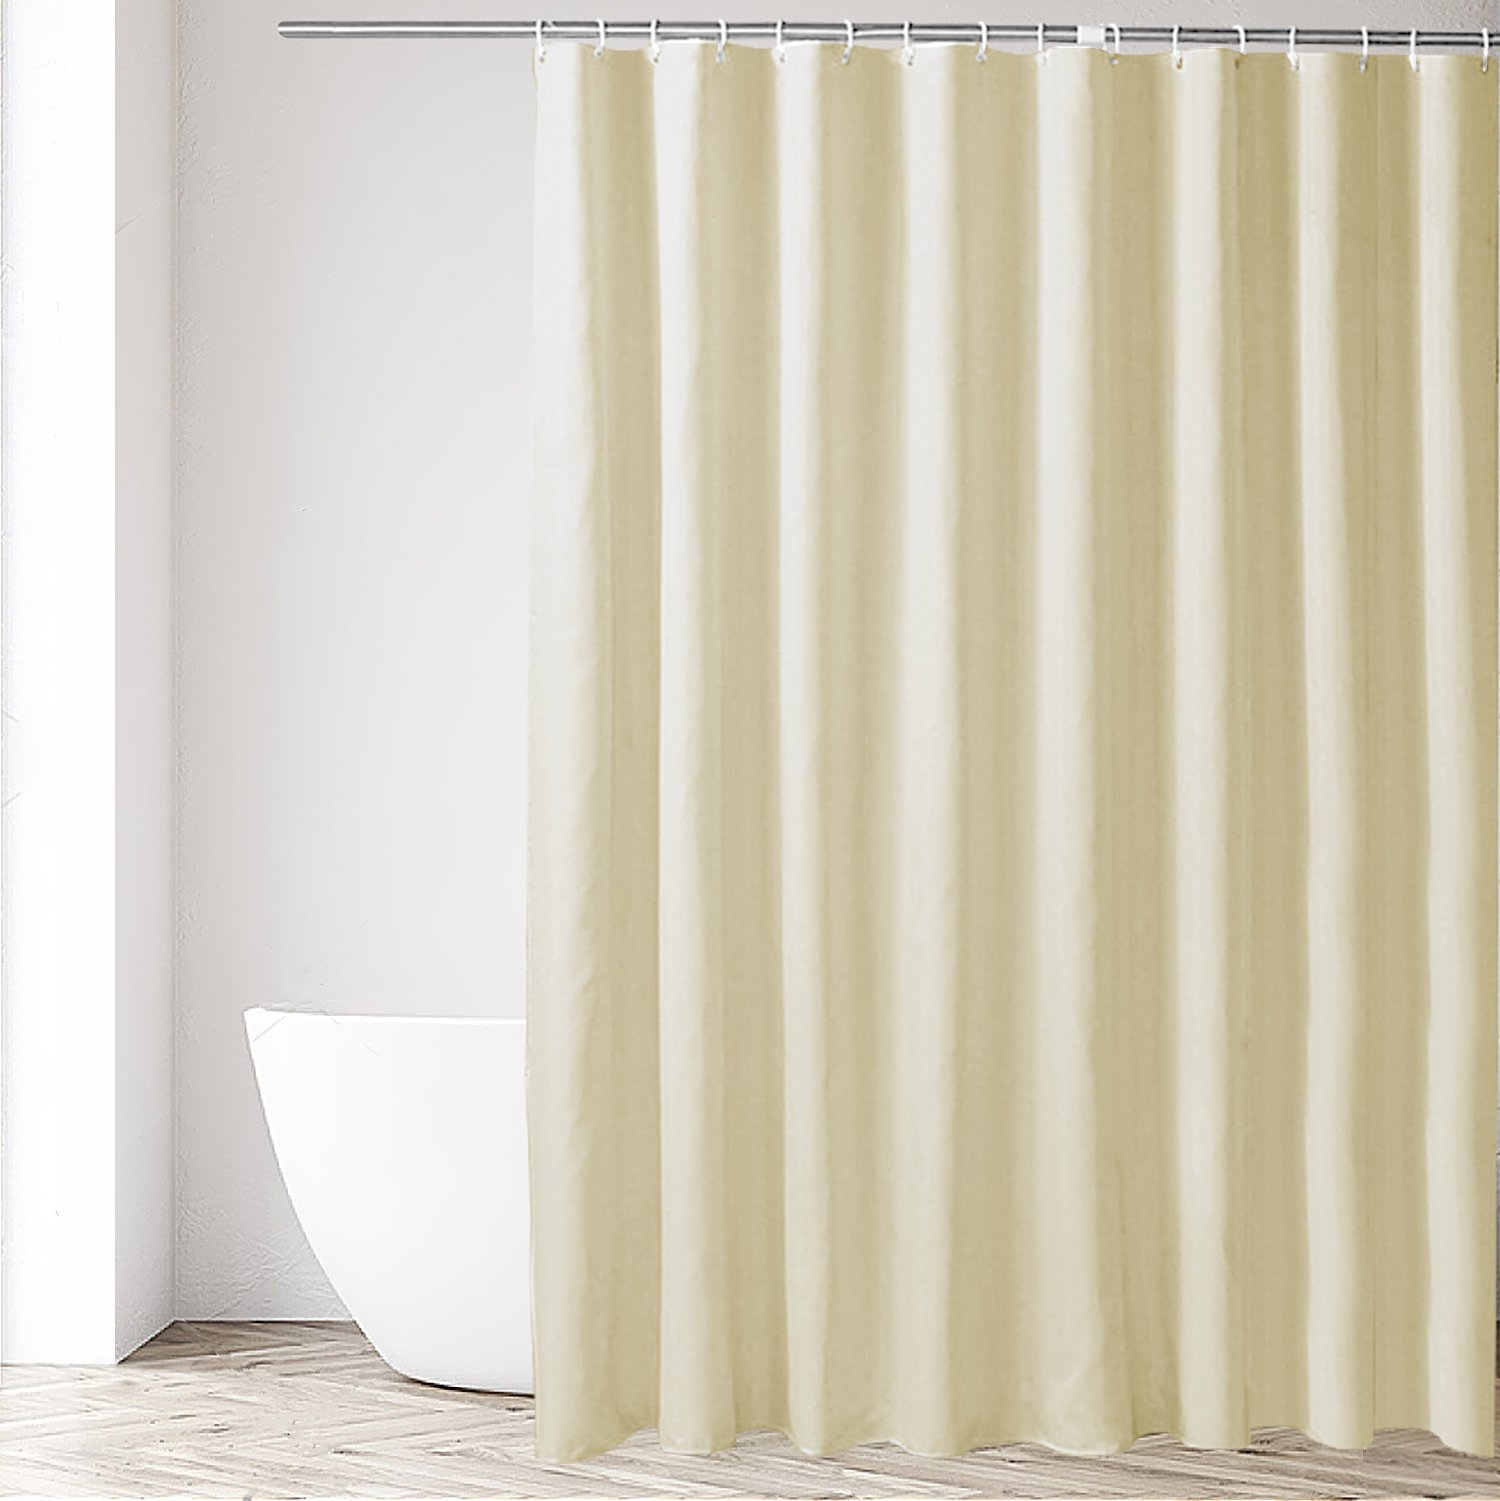 Eforgift Hotel Fabric Shower Curtain or Liner 100% Polyester No Harmful Chemicals Water Proof Stall Shower Curtain Mildew Free Narrow Size, Solid Beige, 36-inch by 72-inch